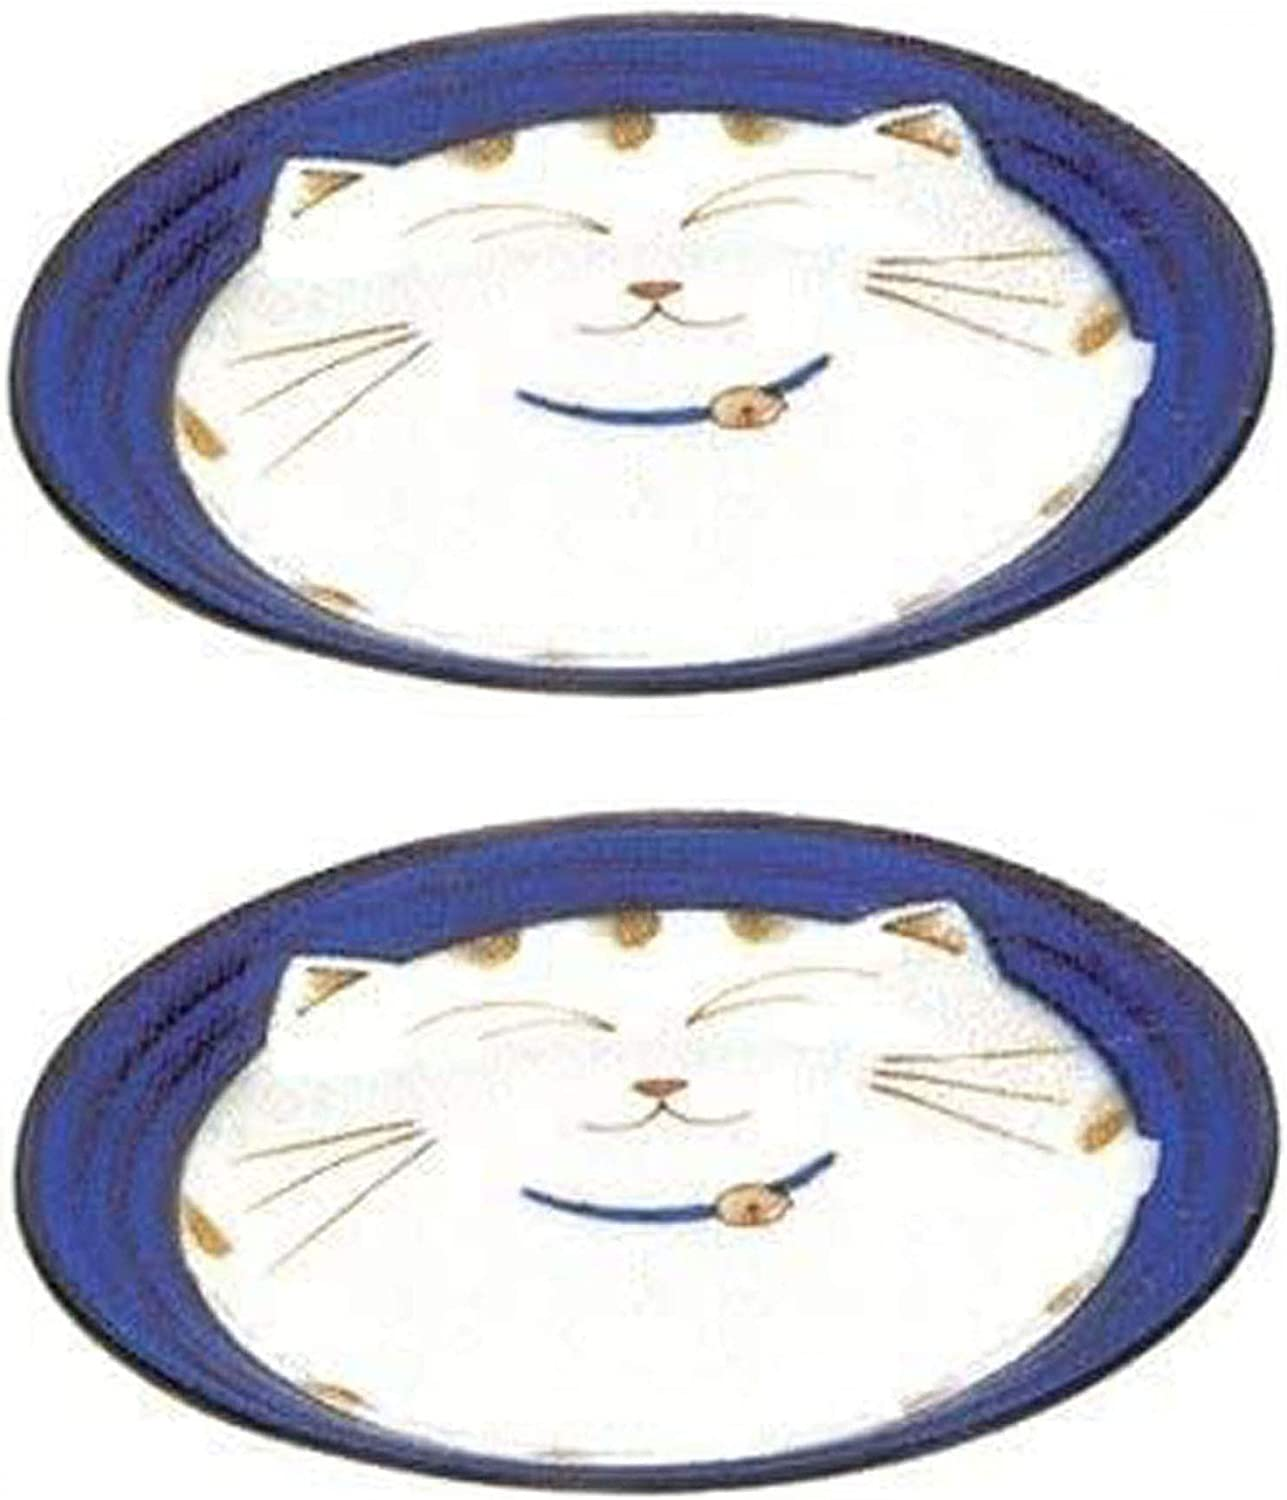 JapanBargain Japanese Round Porcelain Our shop OFFers the best Year-end gift service Plate for Appertiz Dinner